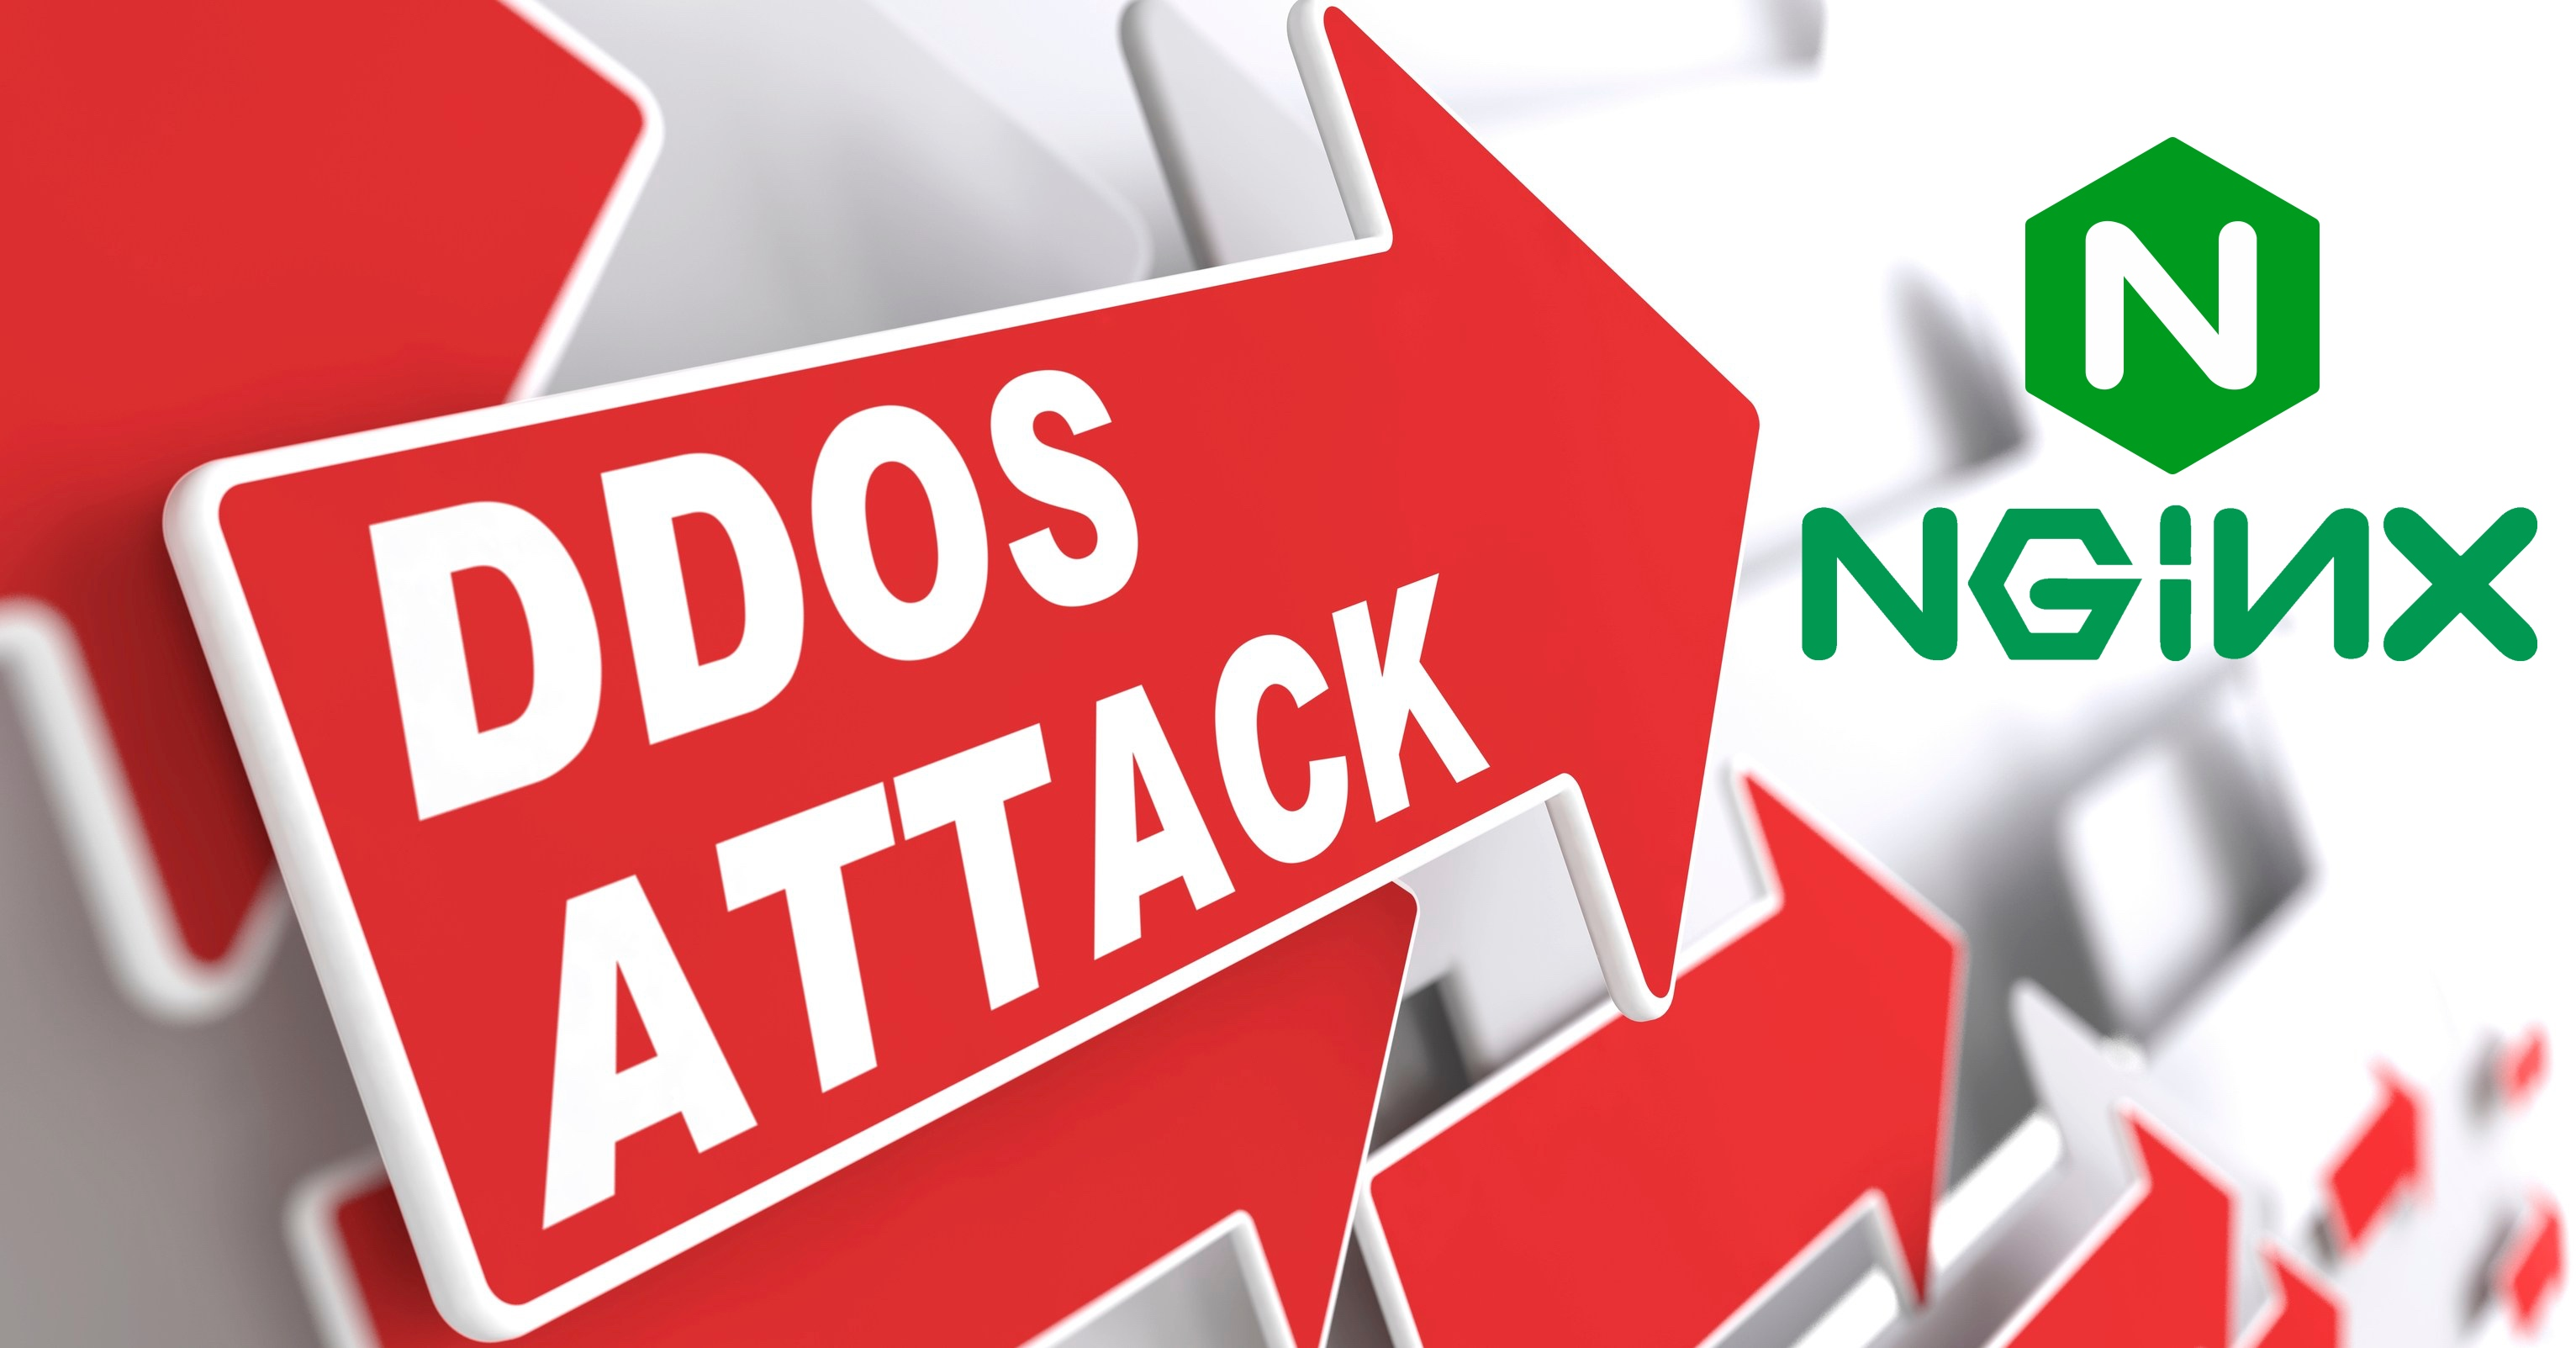 nginx Security Issues Expose More than 14 Million Servers to DoS Attacks